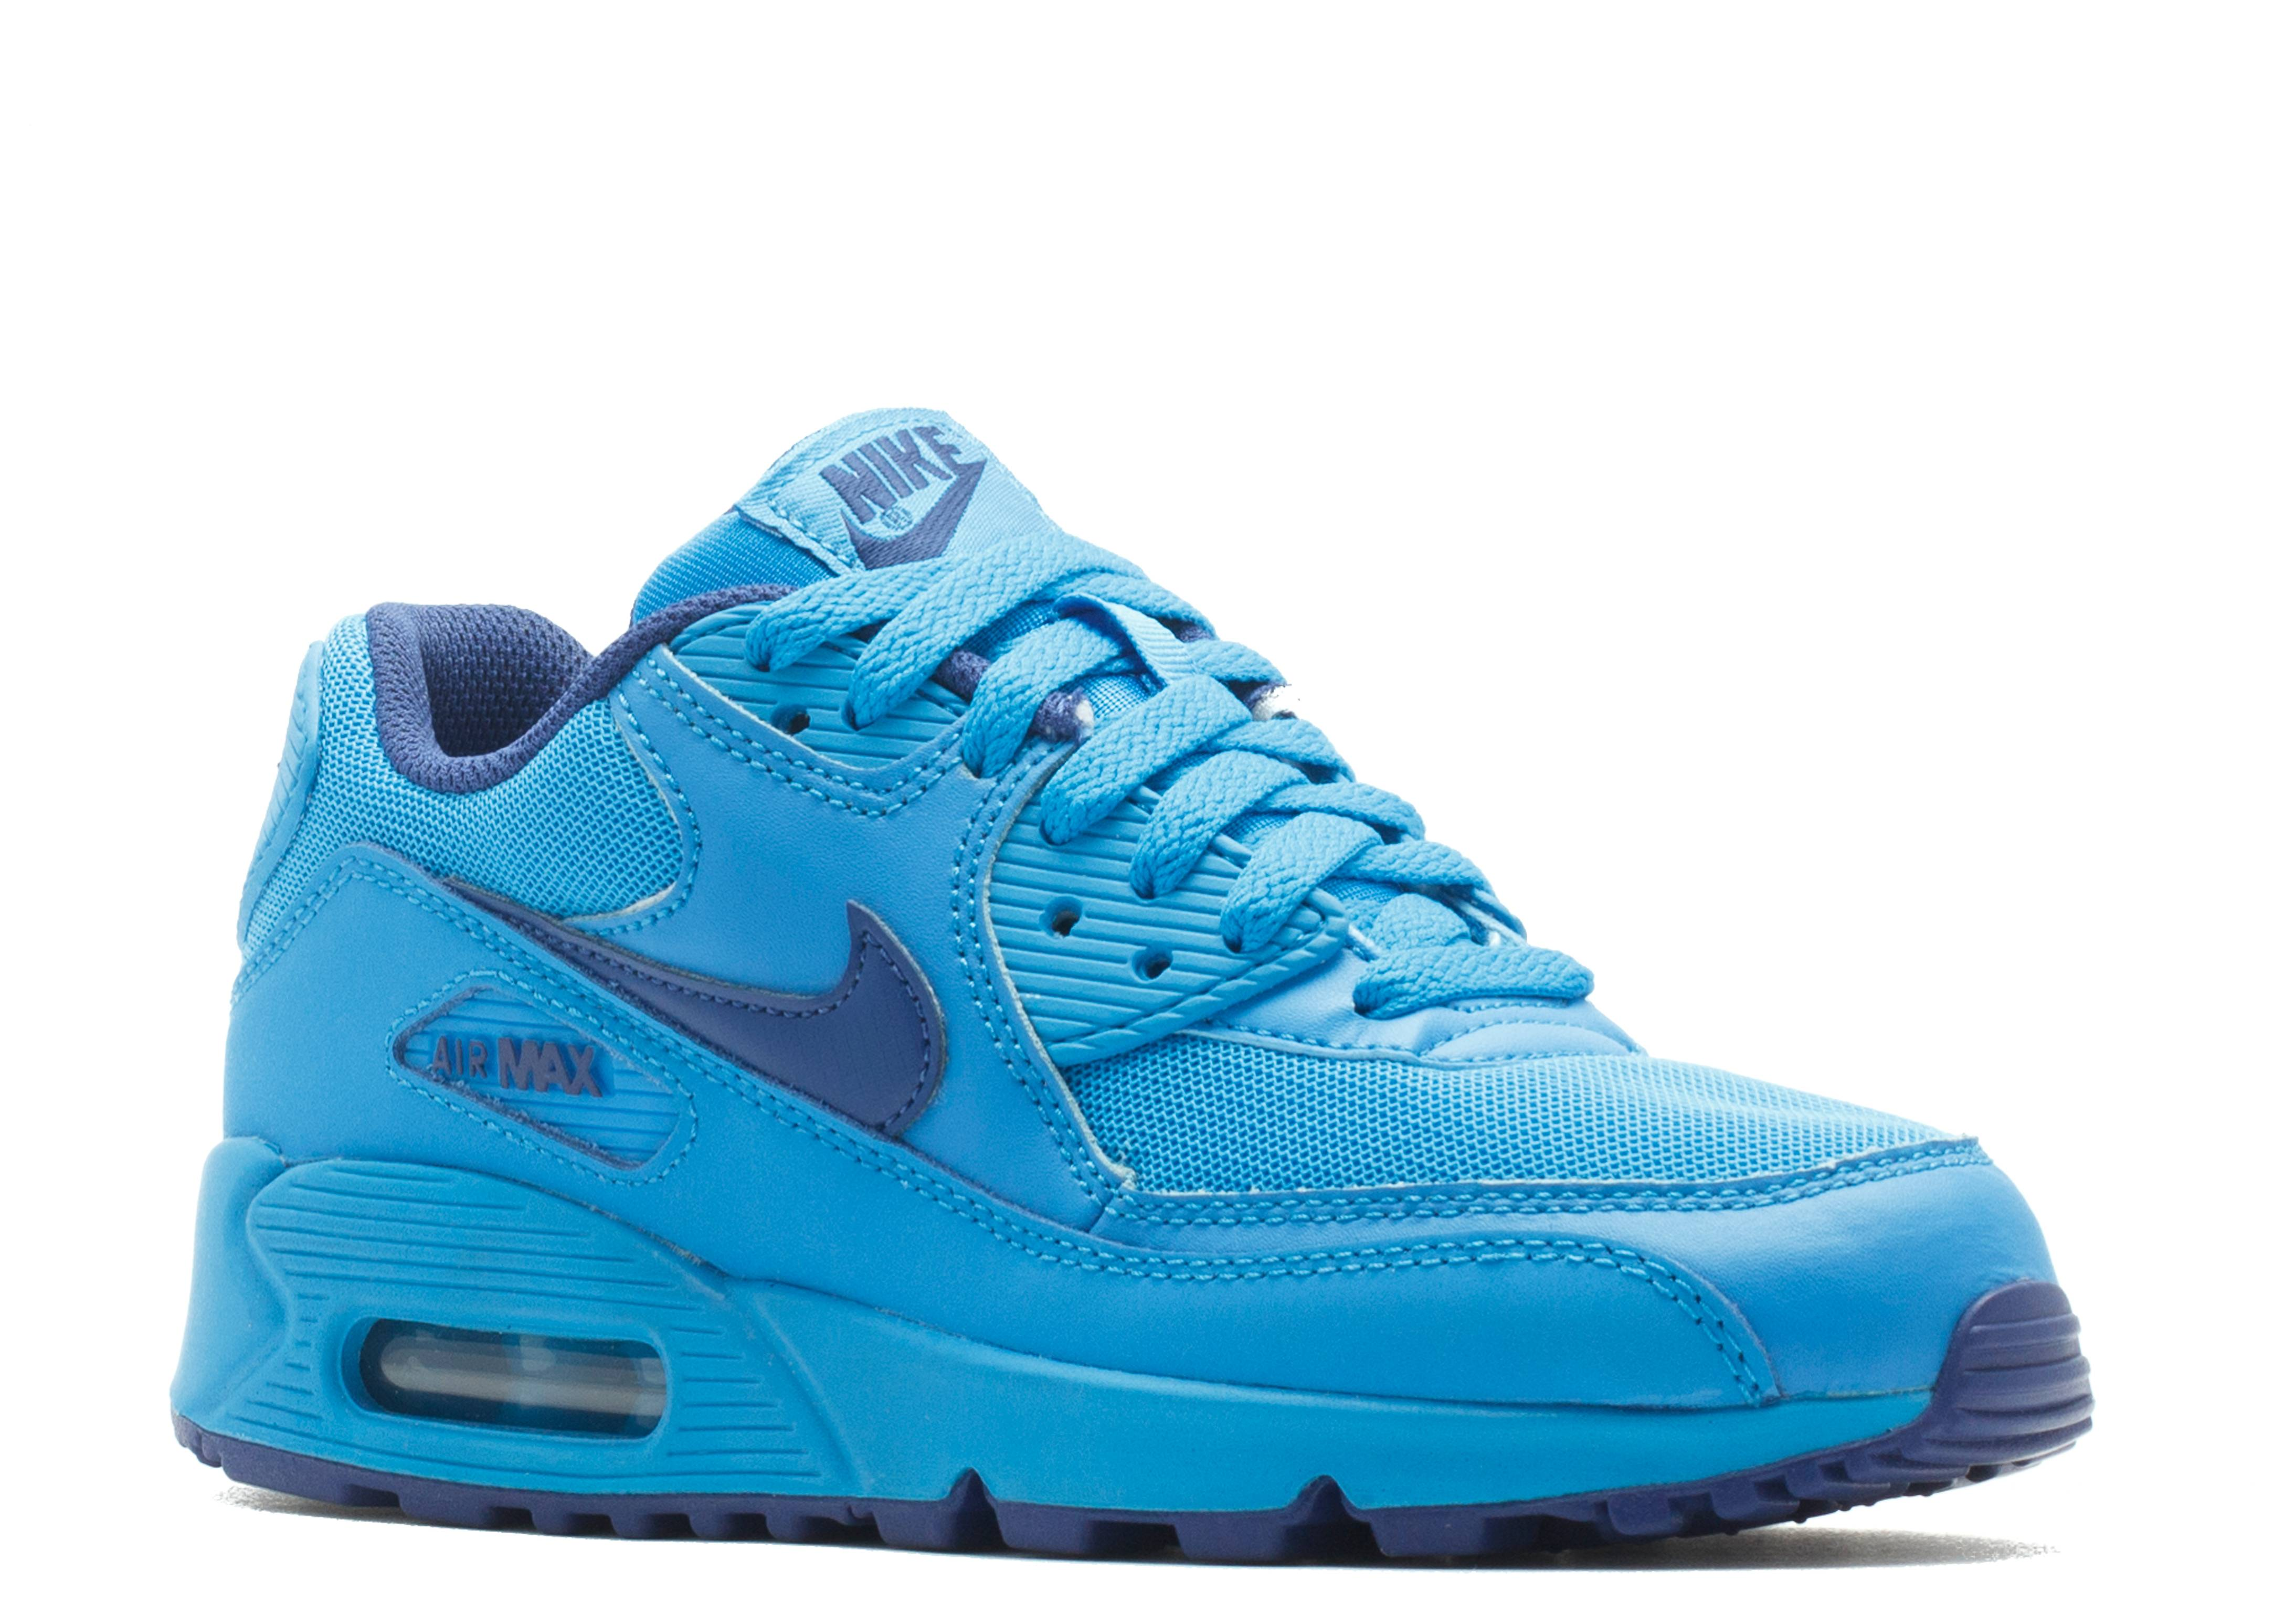 Air Max 90 GS Nike 307793 408 photo bluedeep royal